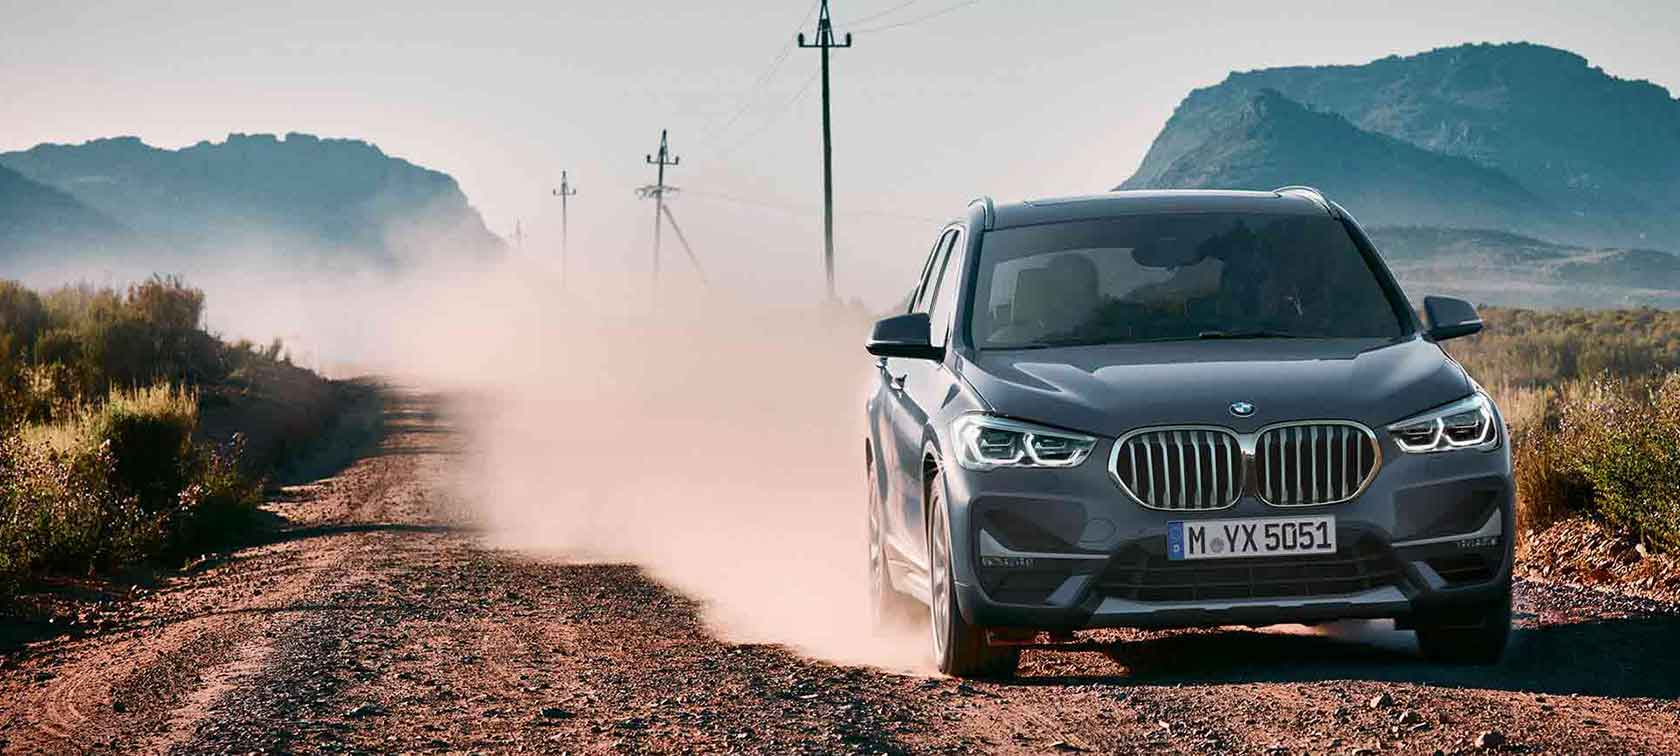 The BMW X1 Series